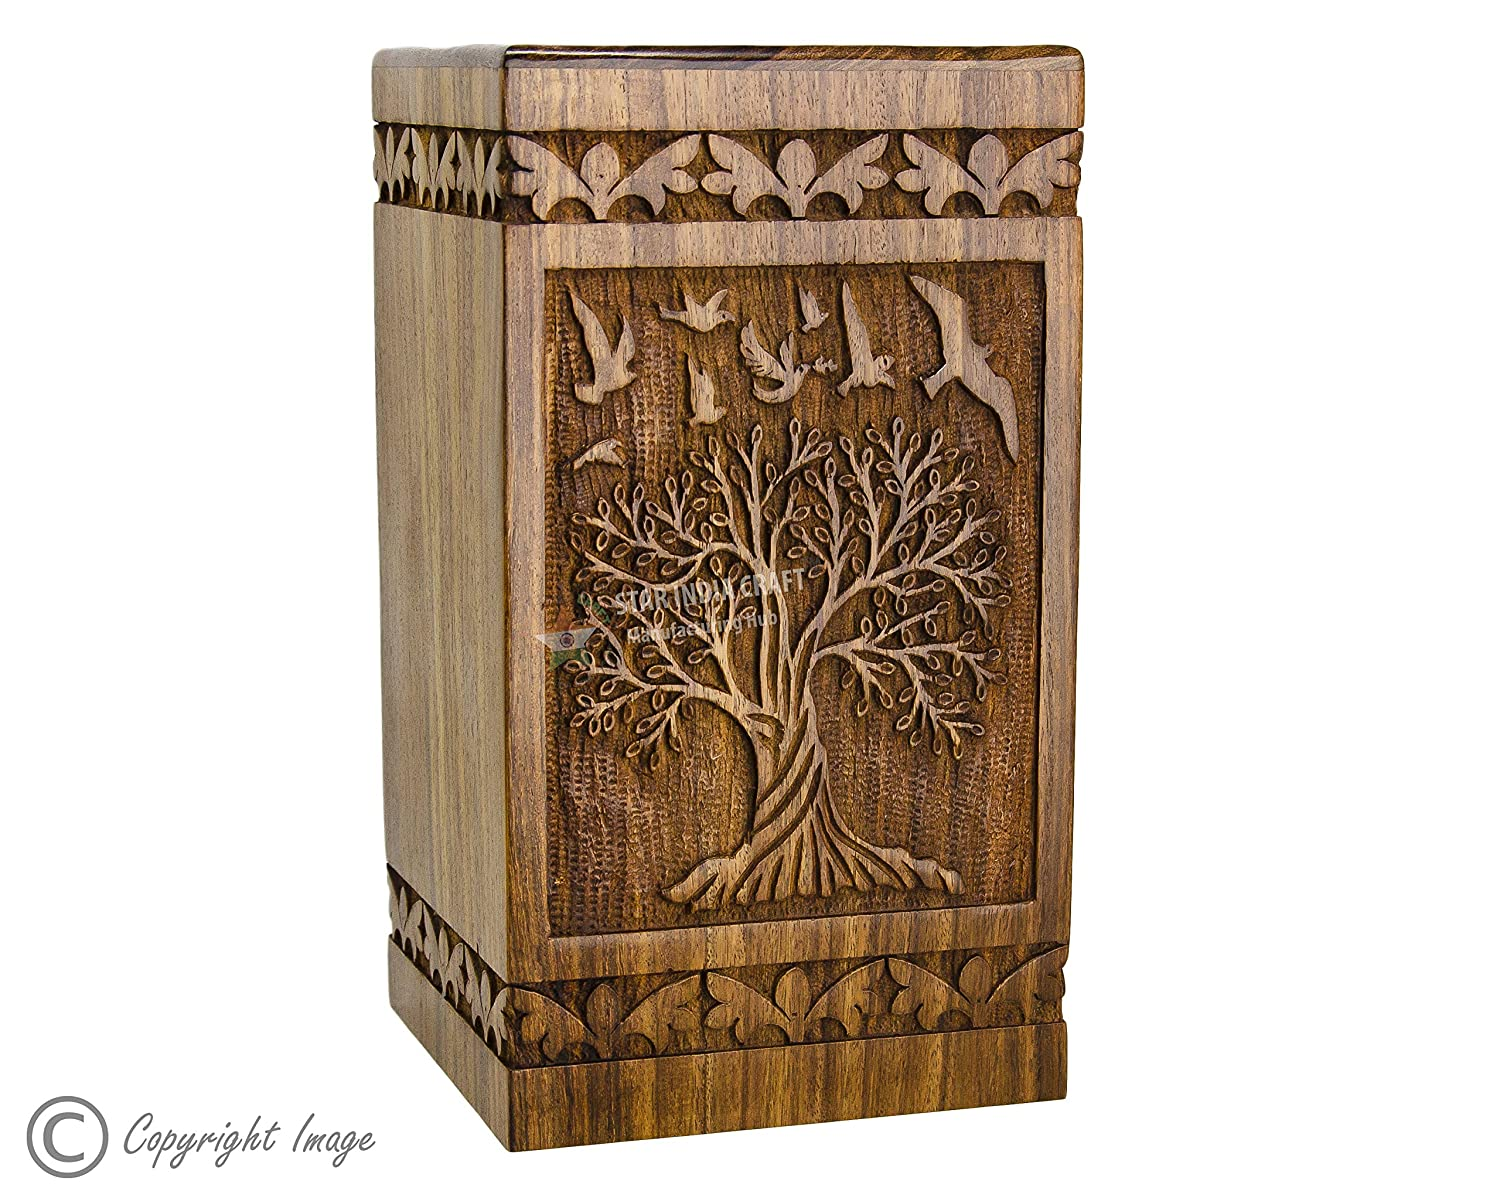 STAR INDIA CRAFT Rosewood Urn for Human Ashes Adult,Tree of Life Wooden Urns for Ashes, Cremation Pet Urns for Dogs Ashes, Wooden Box, Funeral Urn Box Tower 73, 100 Cu in